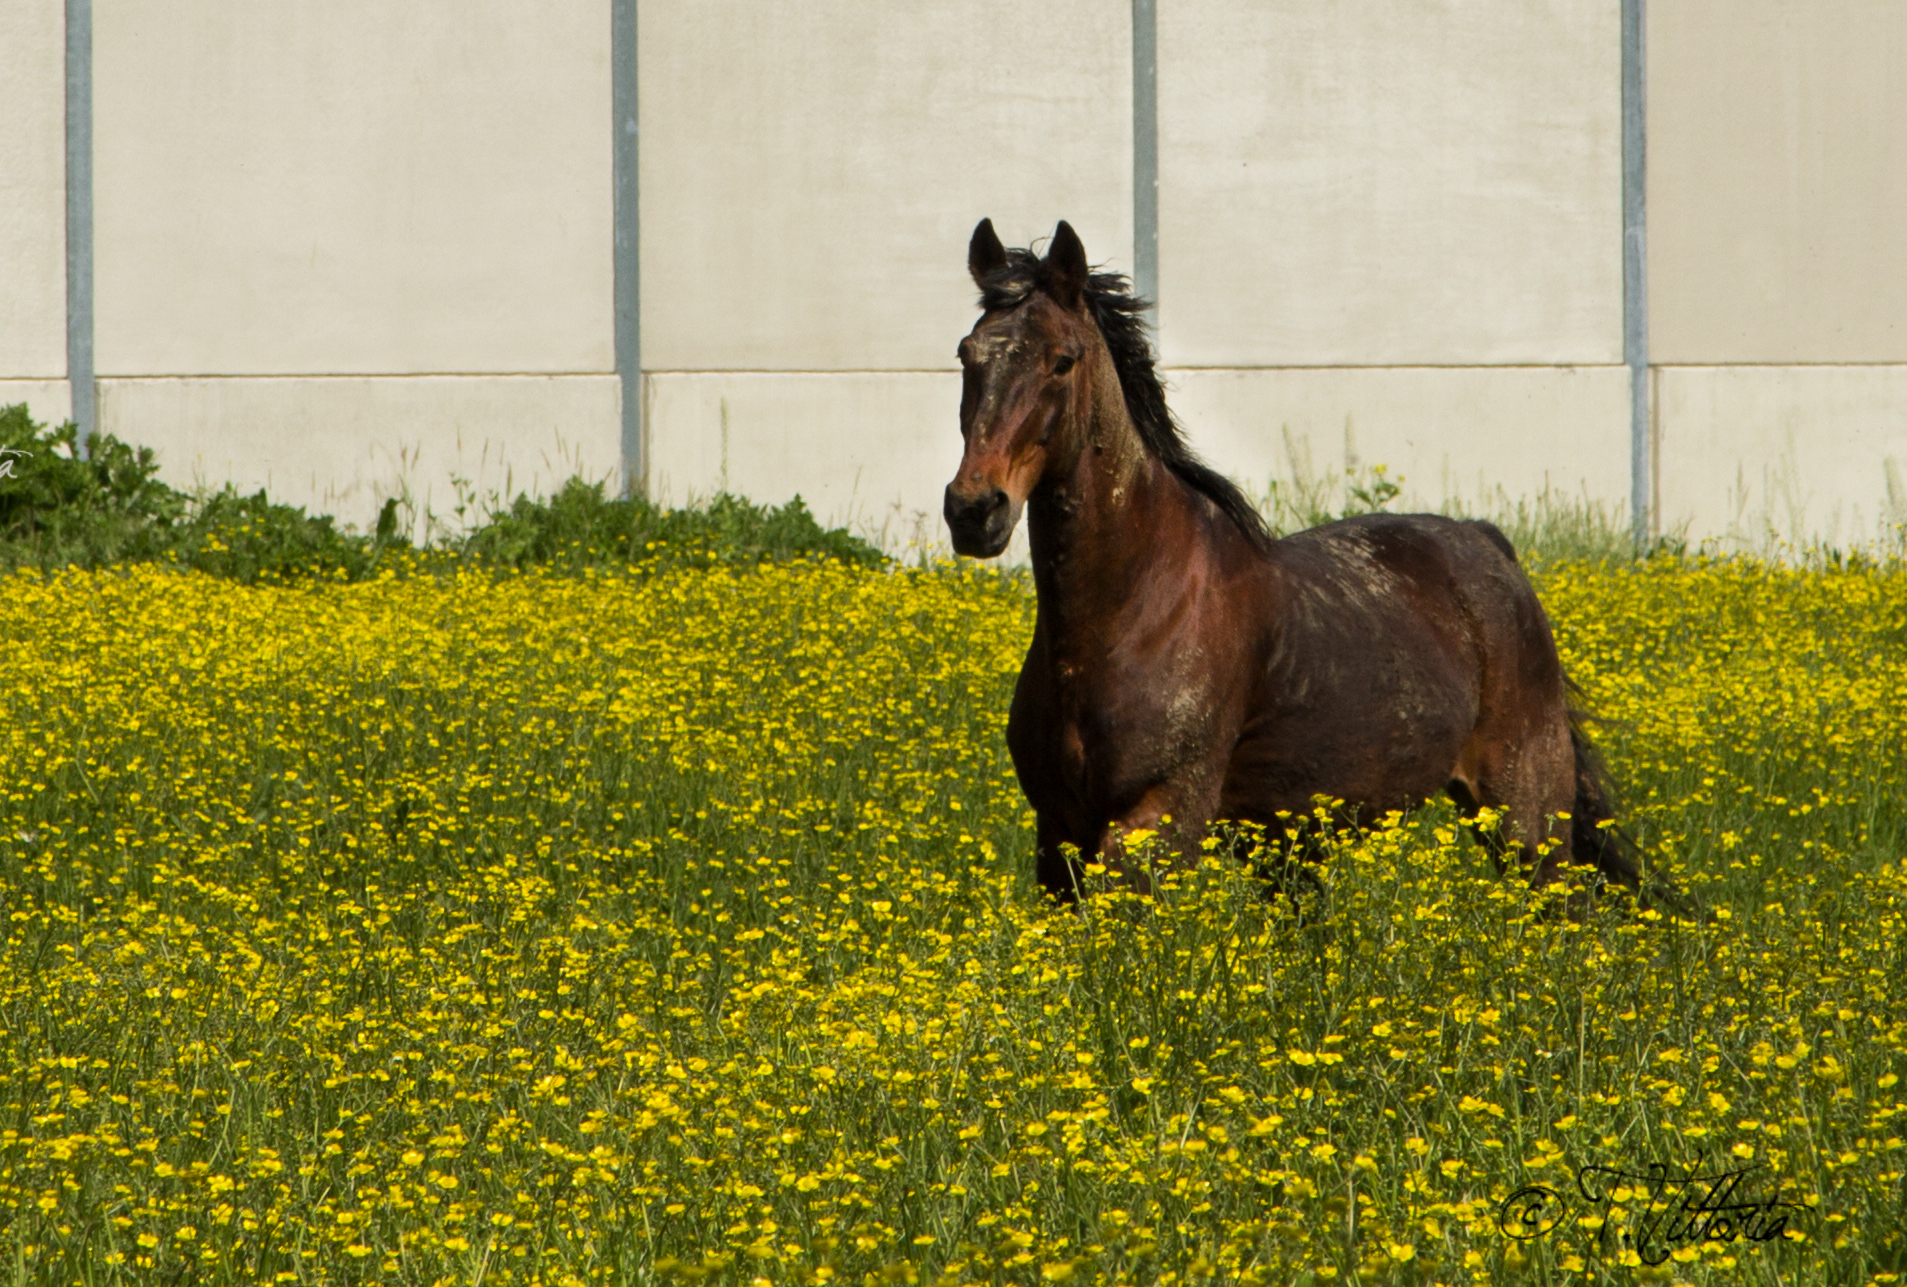 The horse in the flowers...